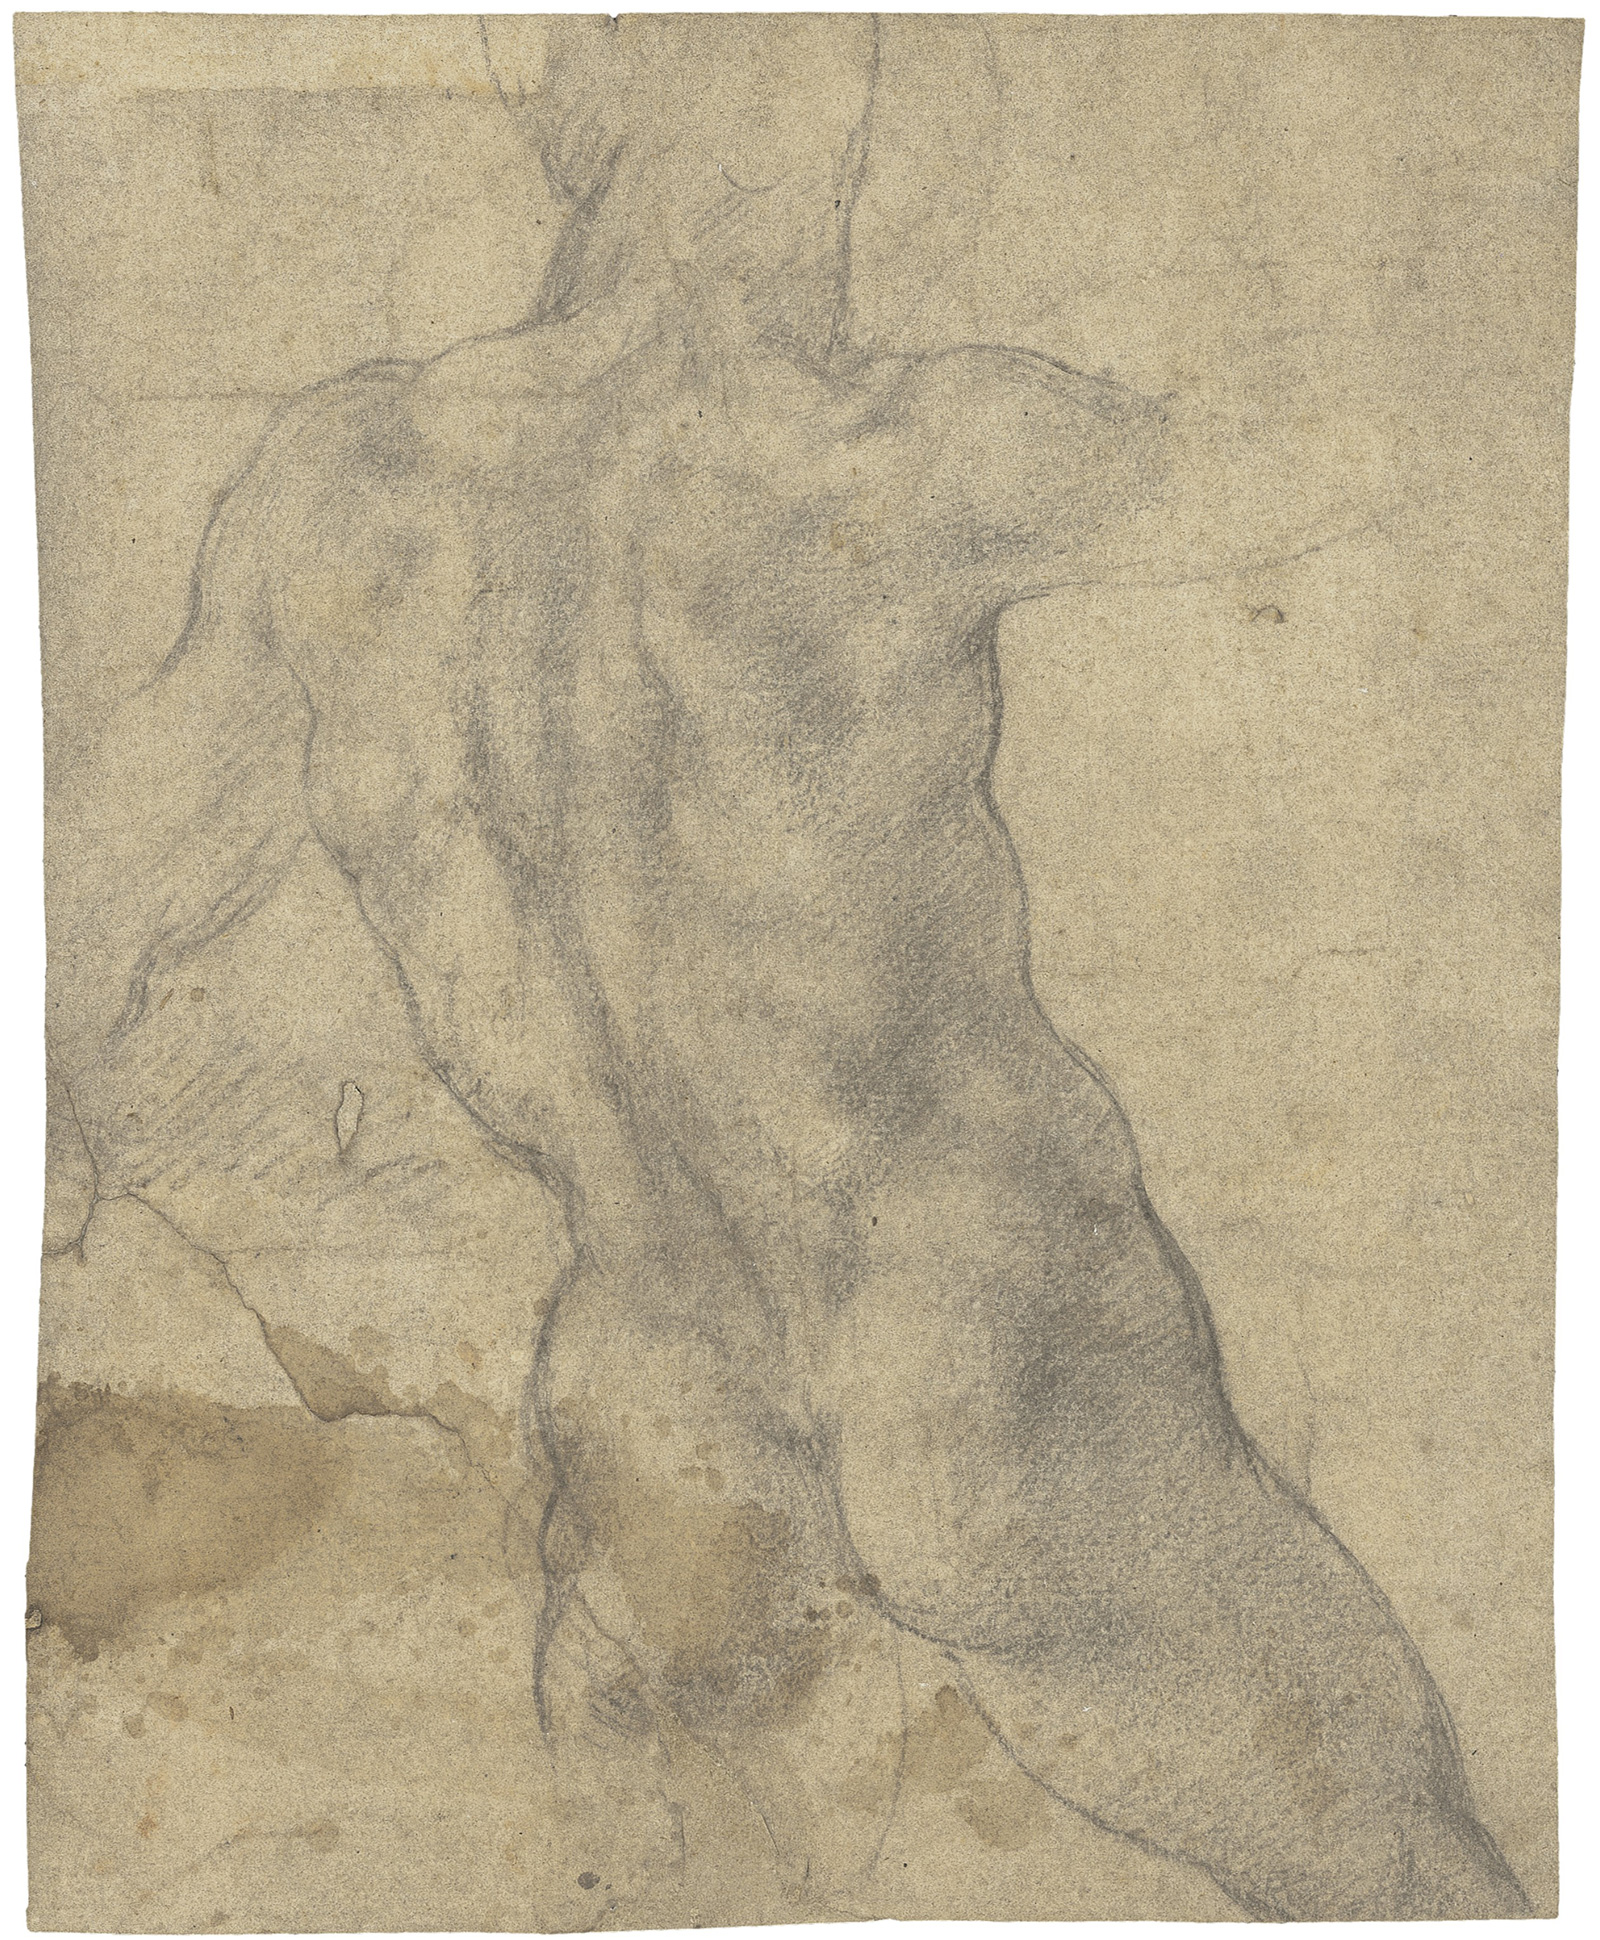 A preparatory drawing by Michelangelo Buonarroti for his lost commission The Battle of Cascina Amateur Hardcore Pictures Free image.